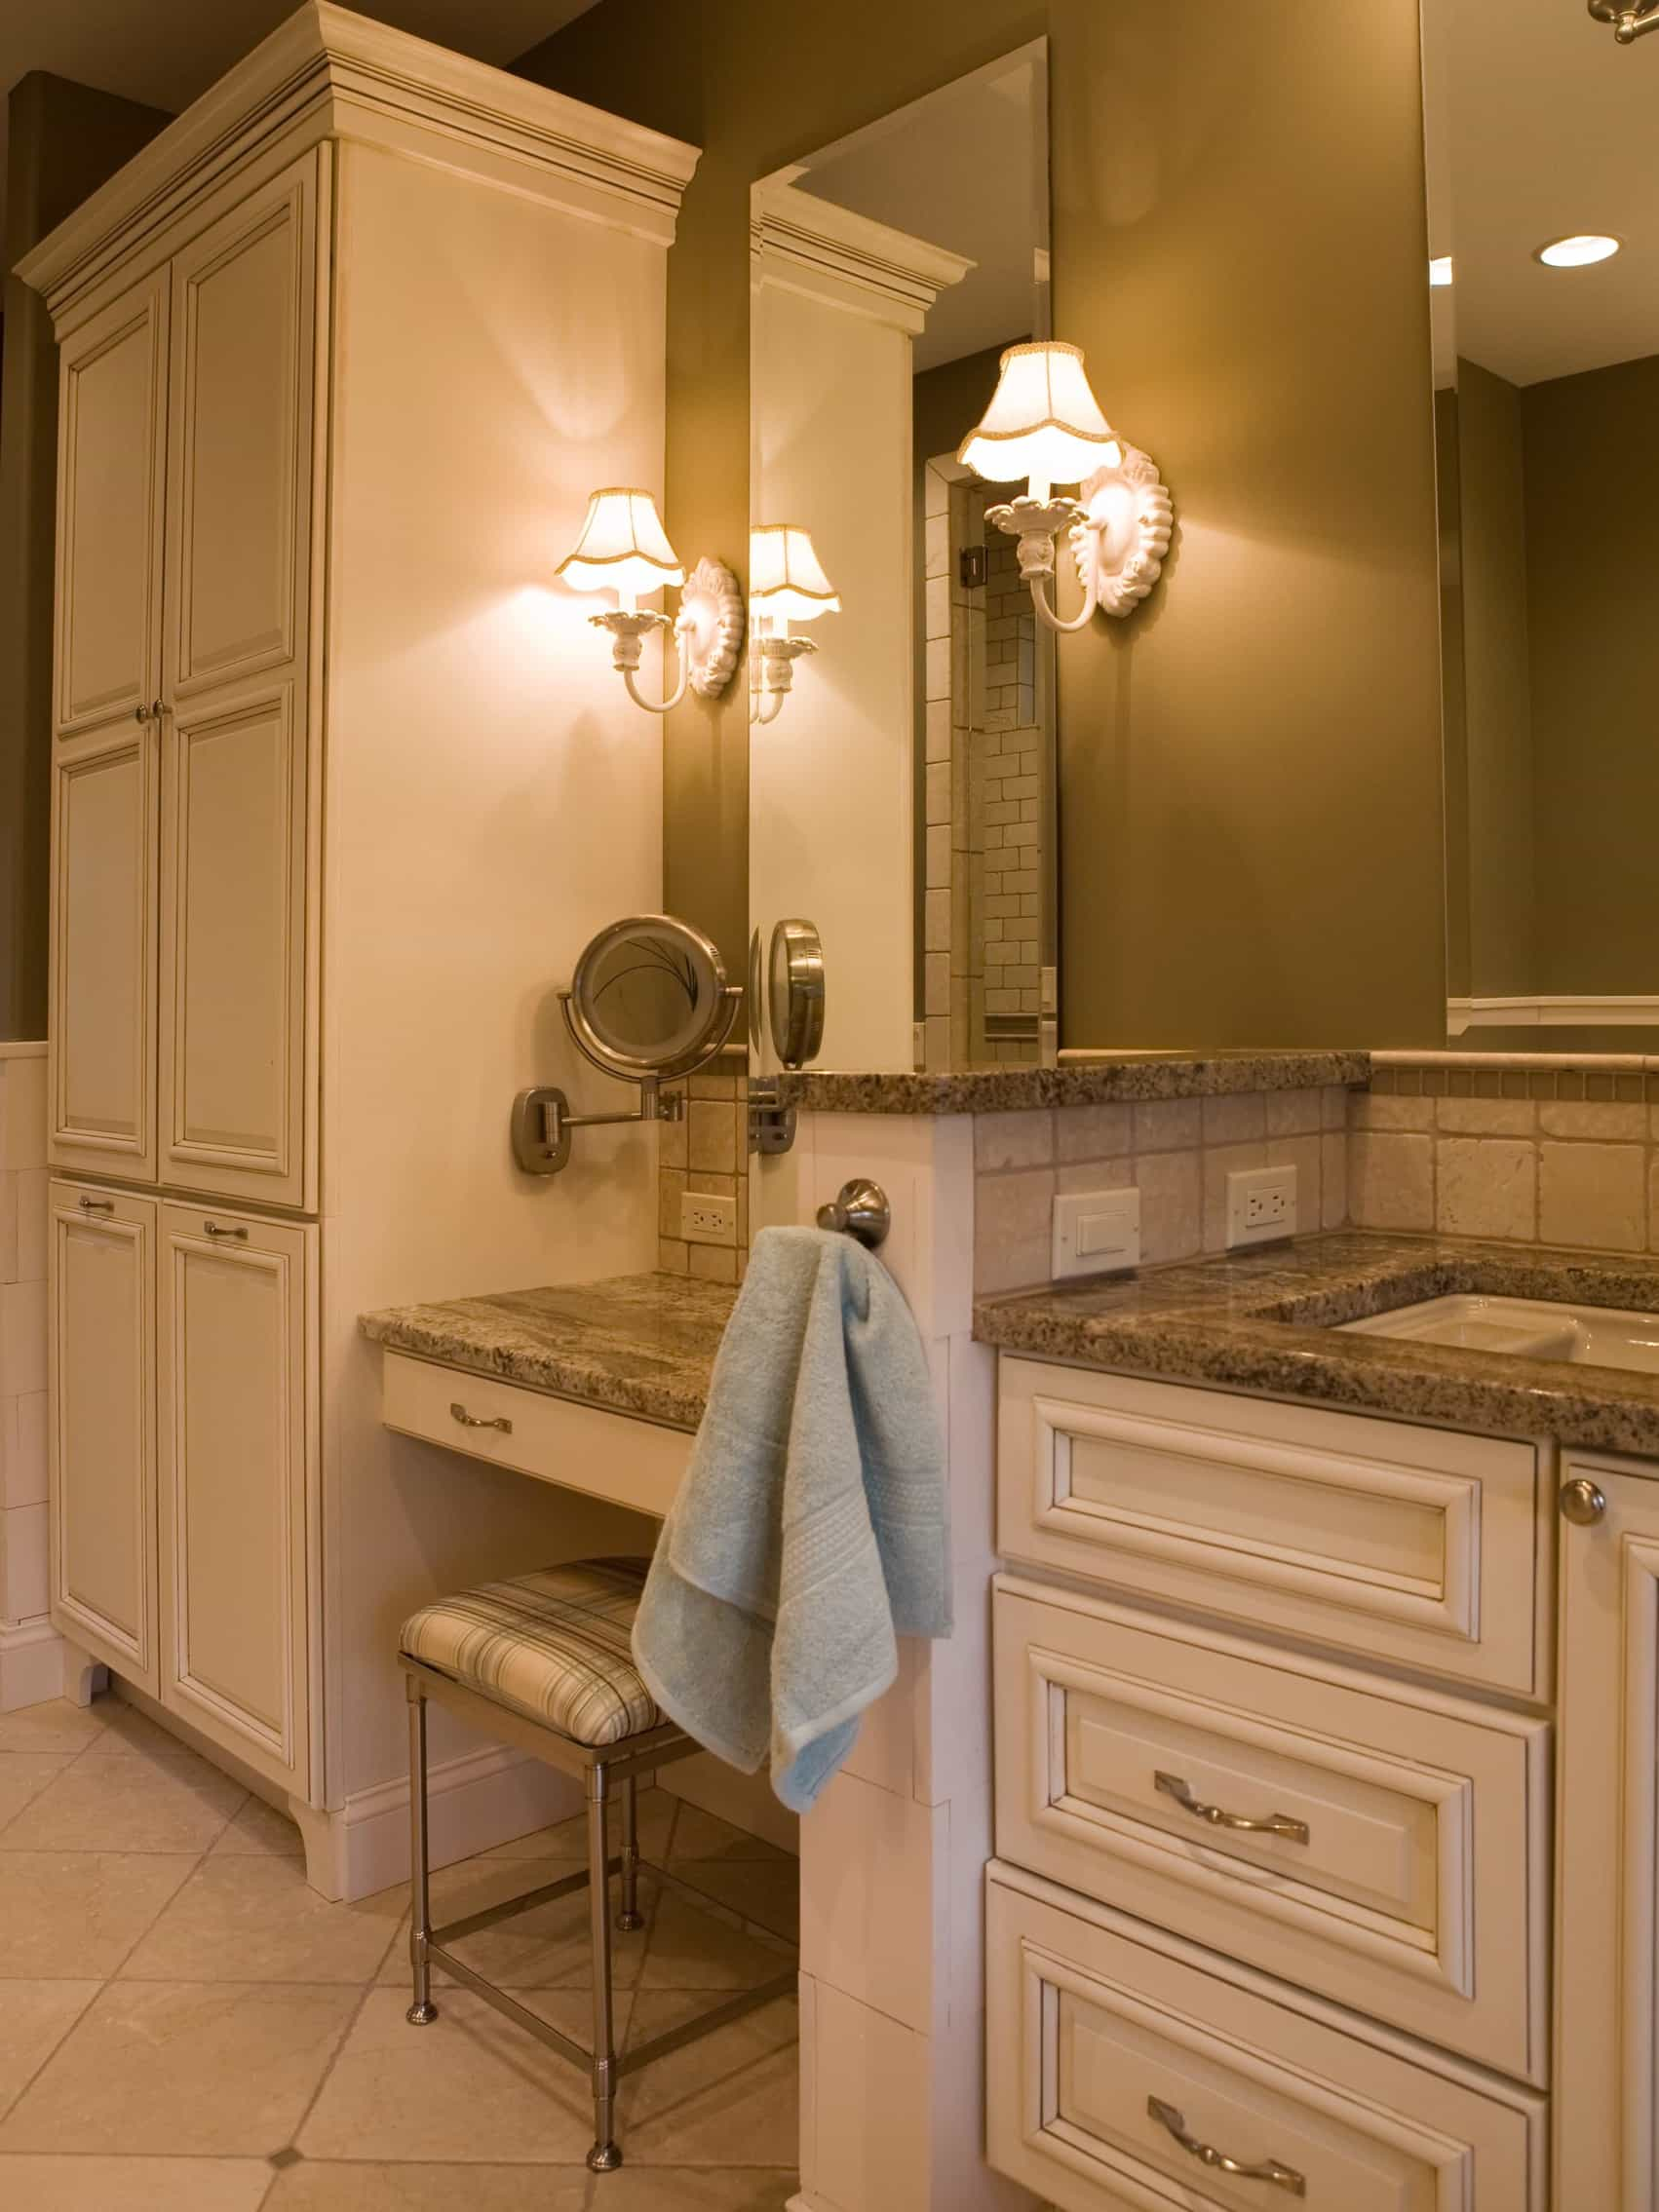 Featured Image of Cottage Style Bathroom Flattering Sconce Lighting